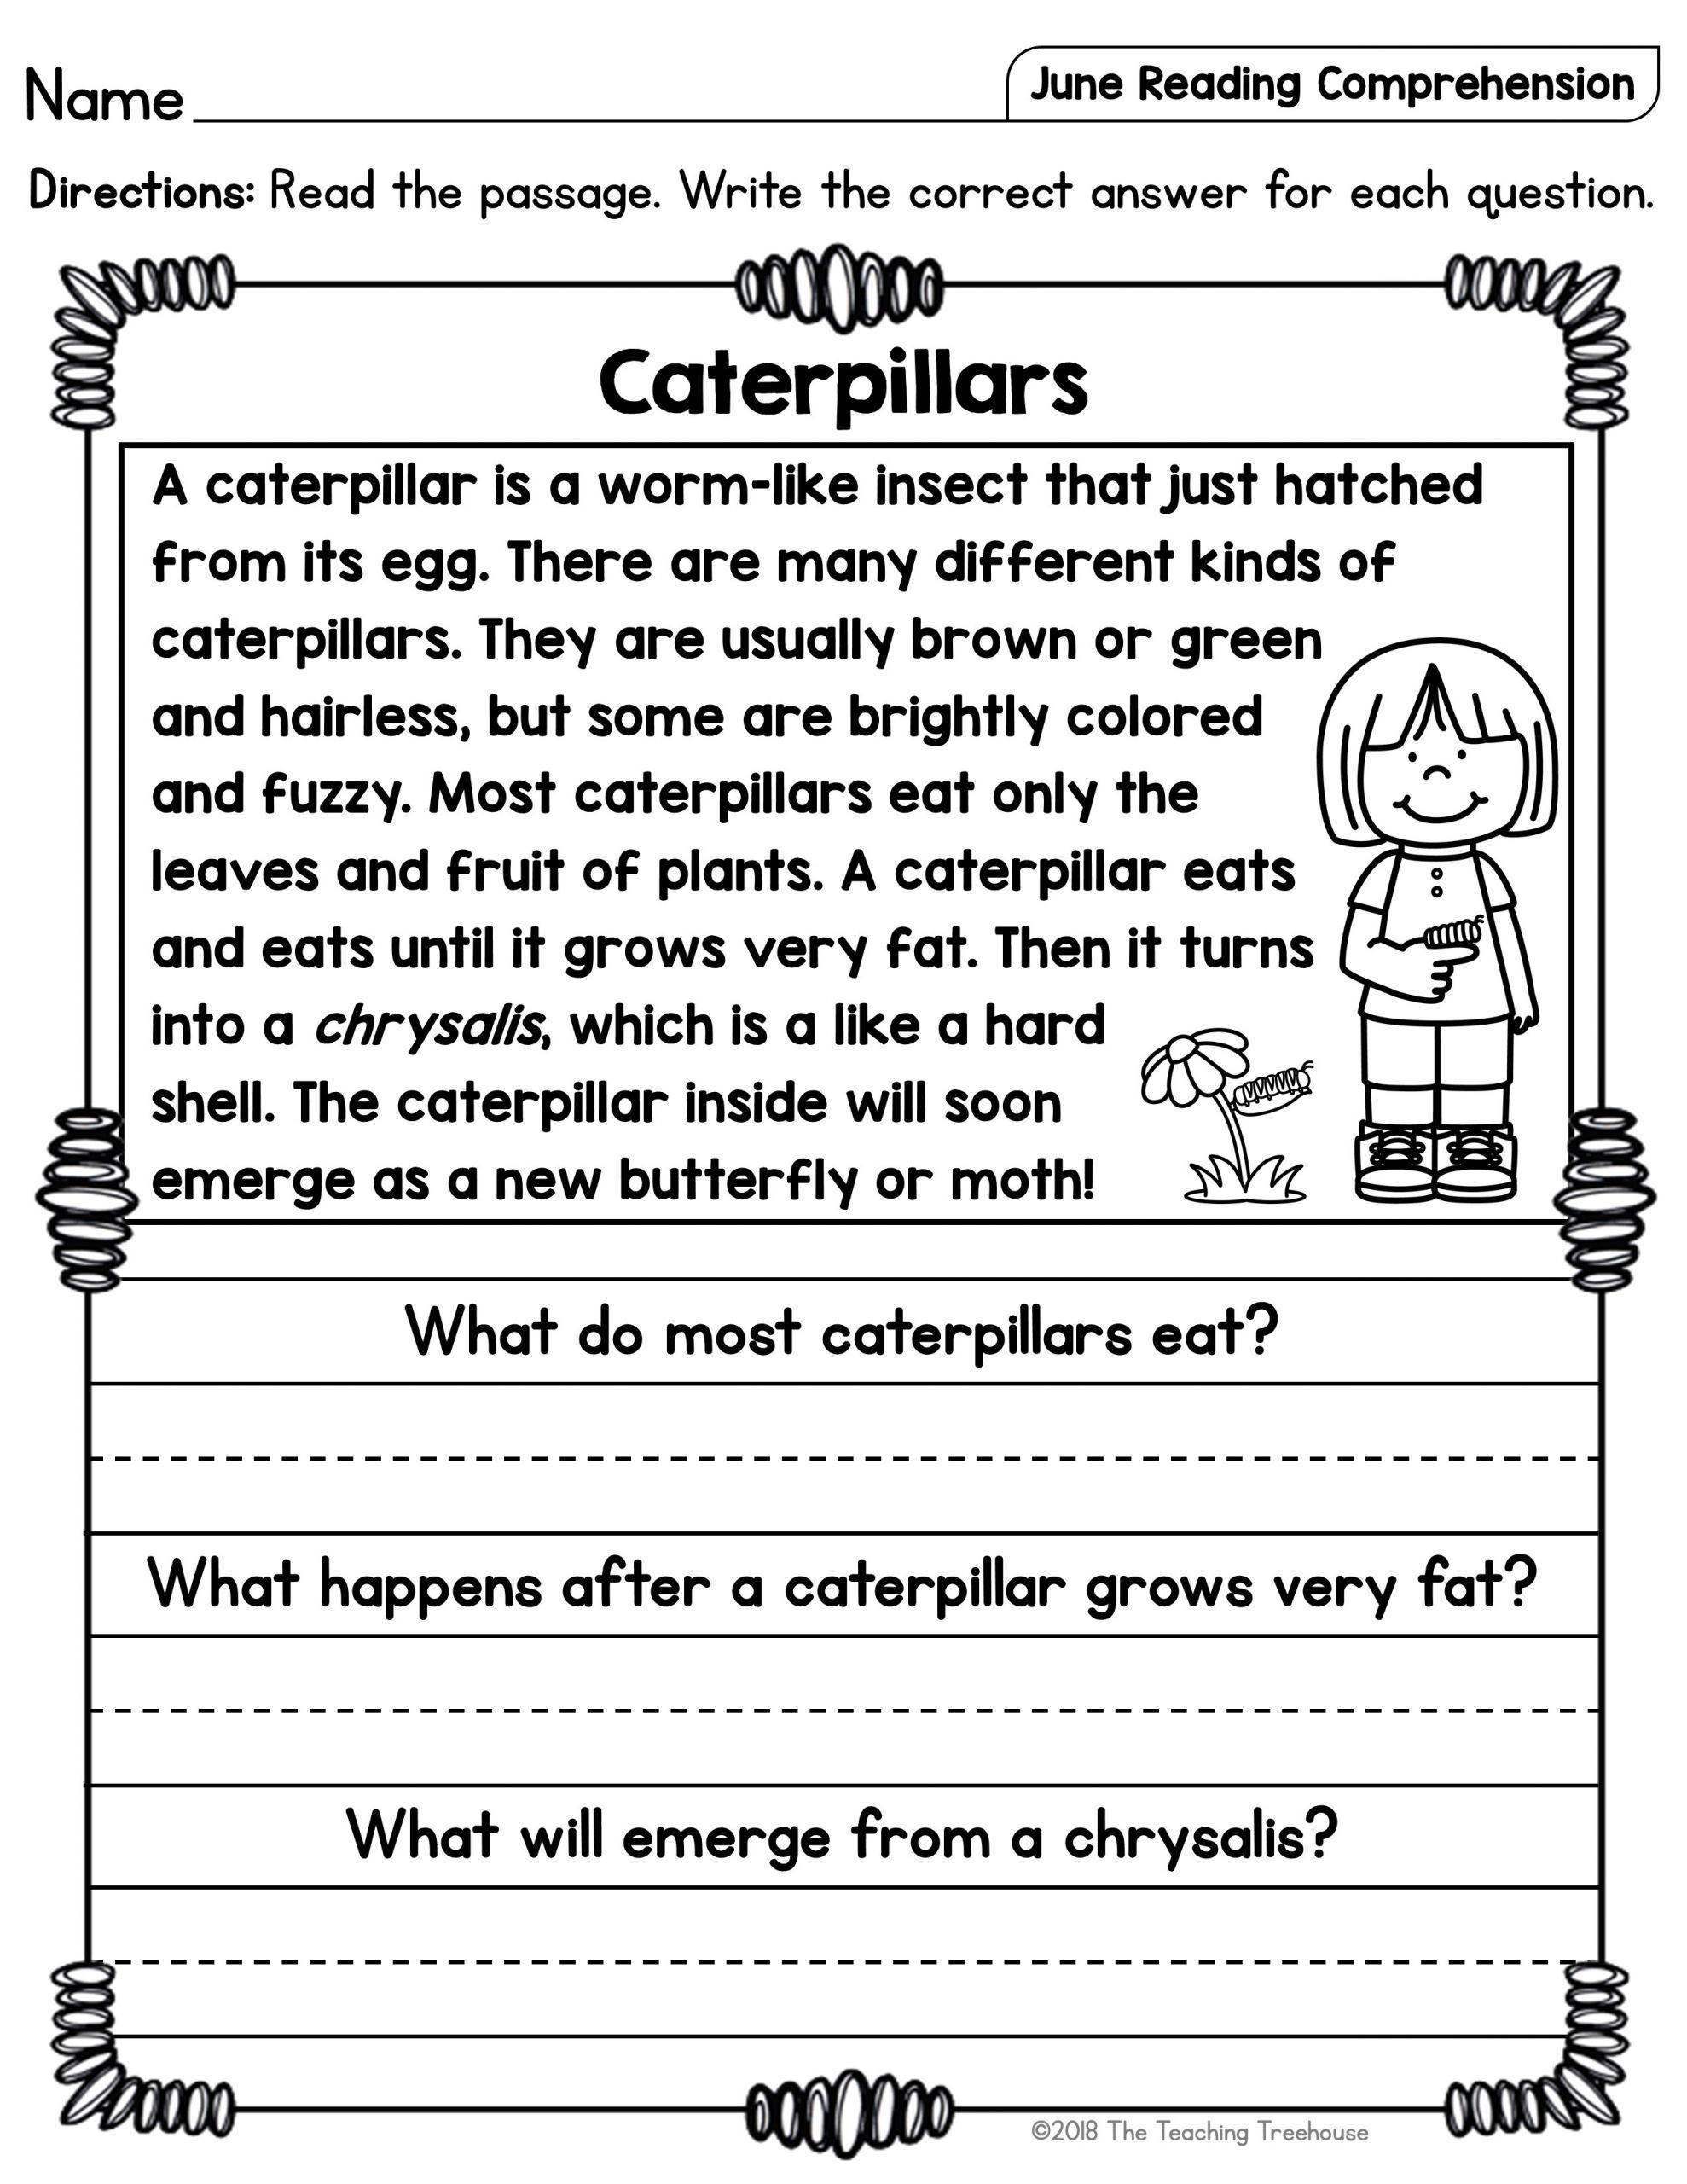 4 Year 4 Reading Comprehension In